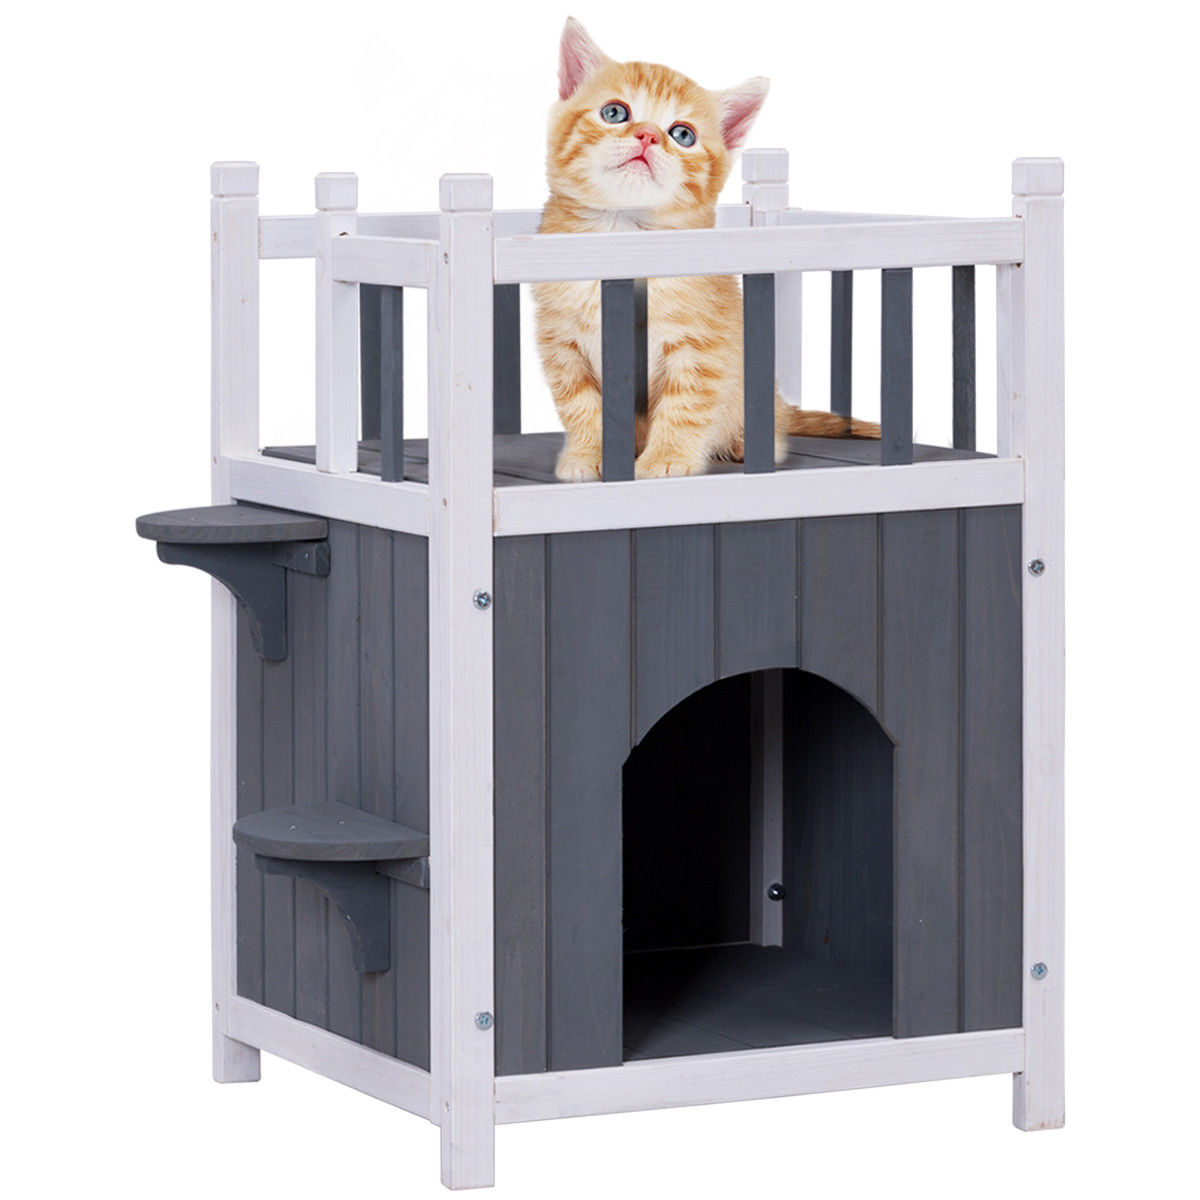 Gymax Wooden Cat Pet Home with Balcony Pet House Small Dog Indoor Outdoor Shelter - image 9 de 9